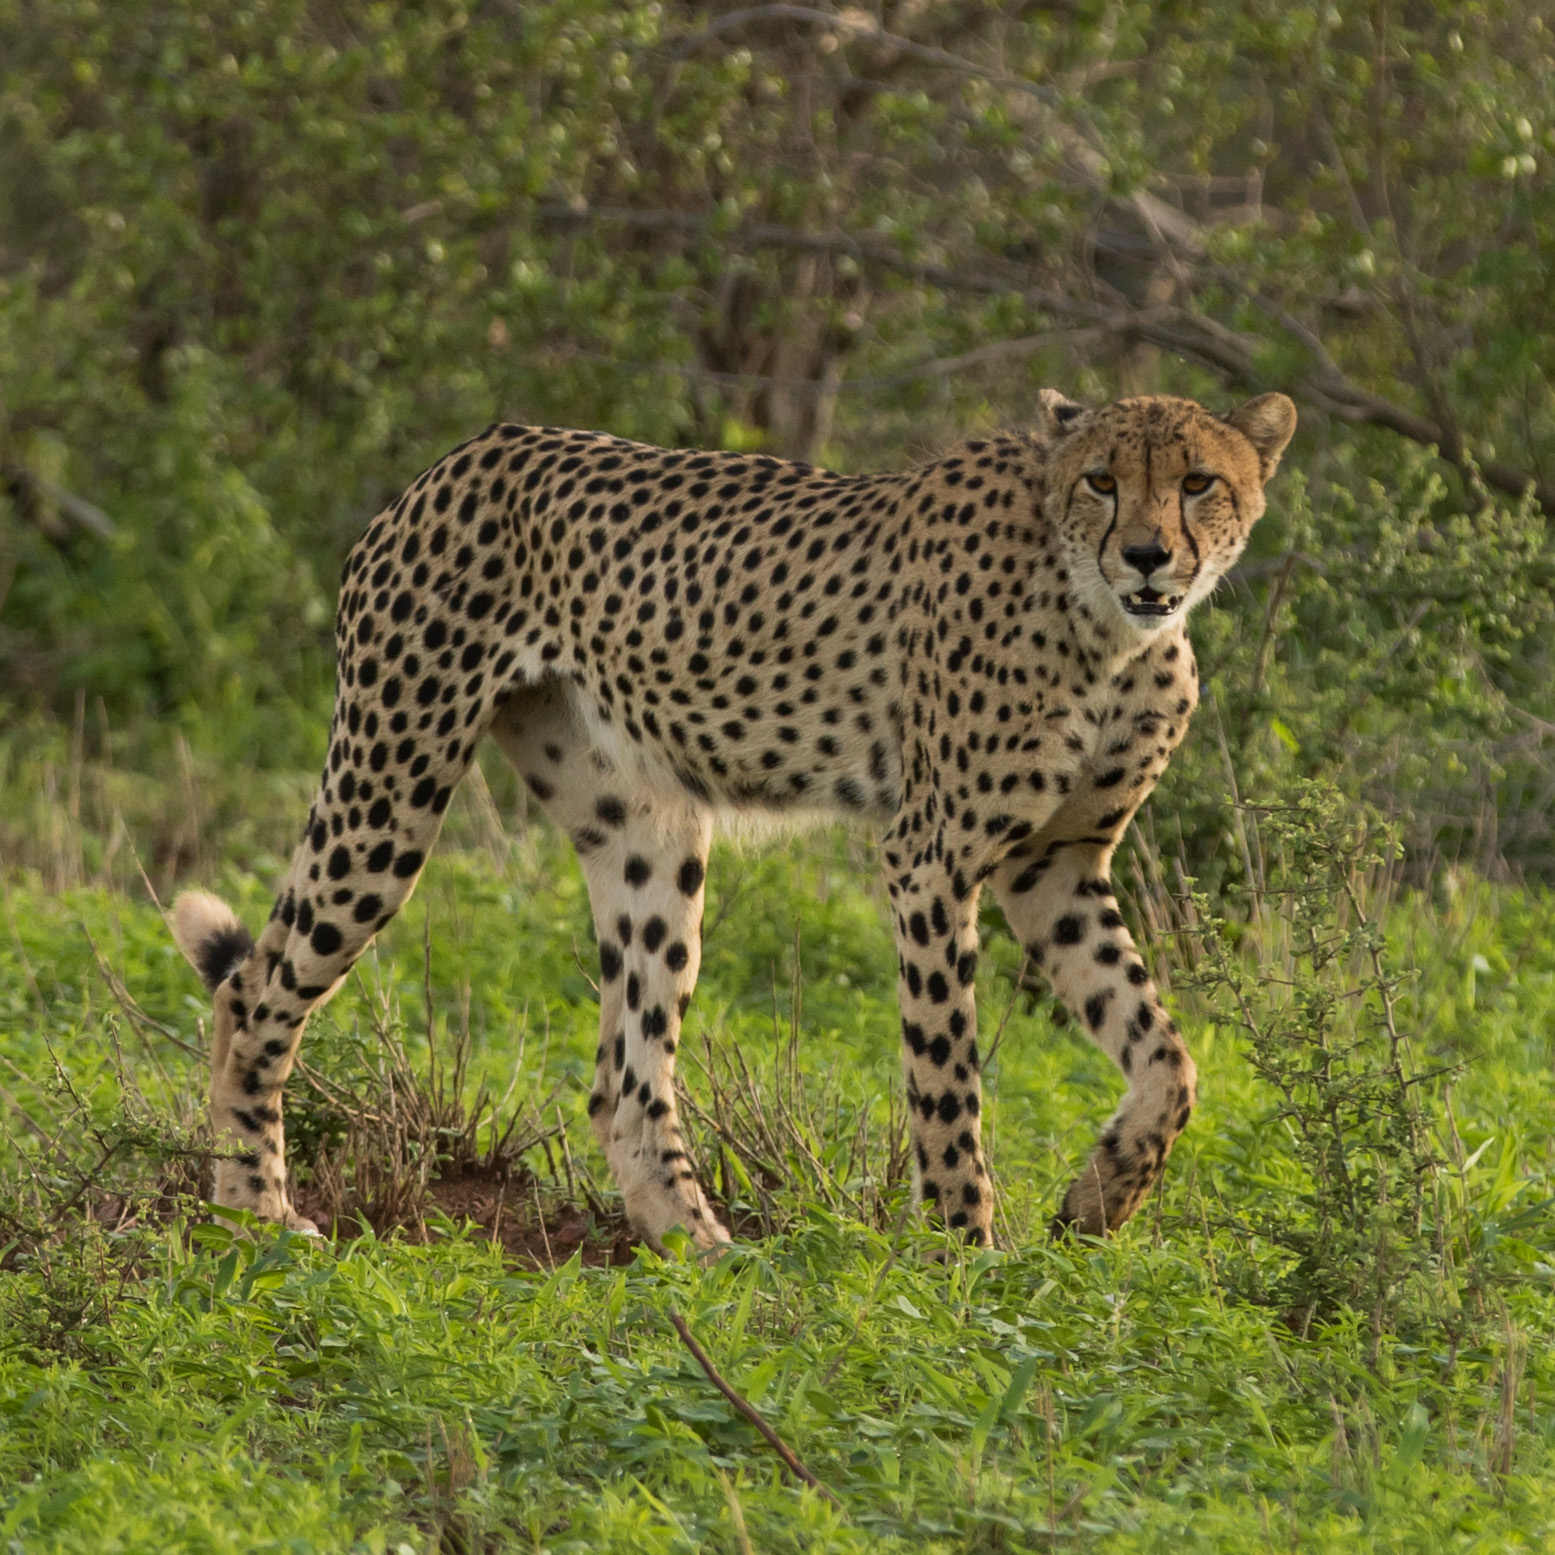 A cheetah wanders through the green grasses in search of a hunting opportunity.